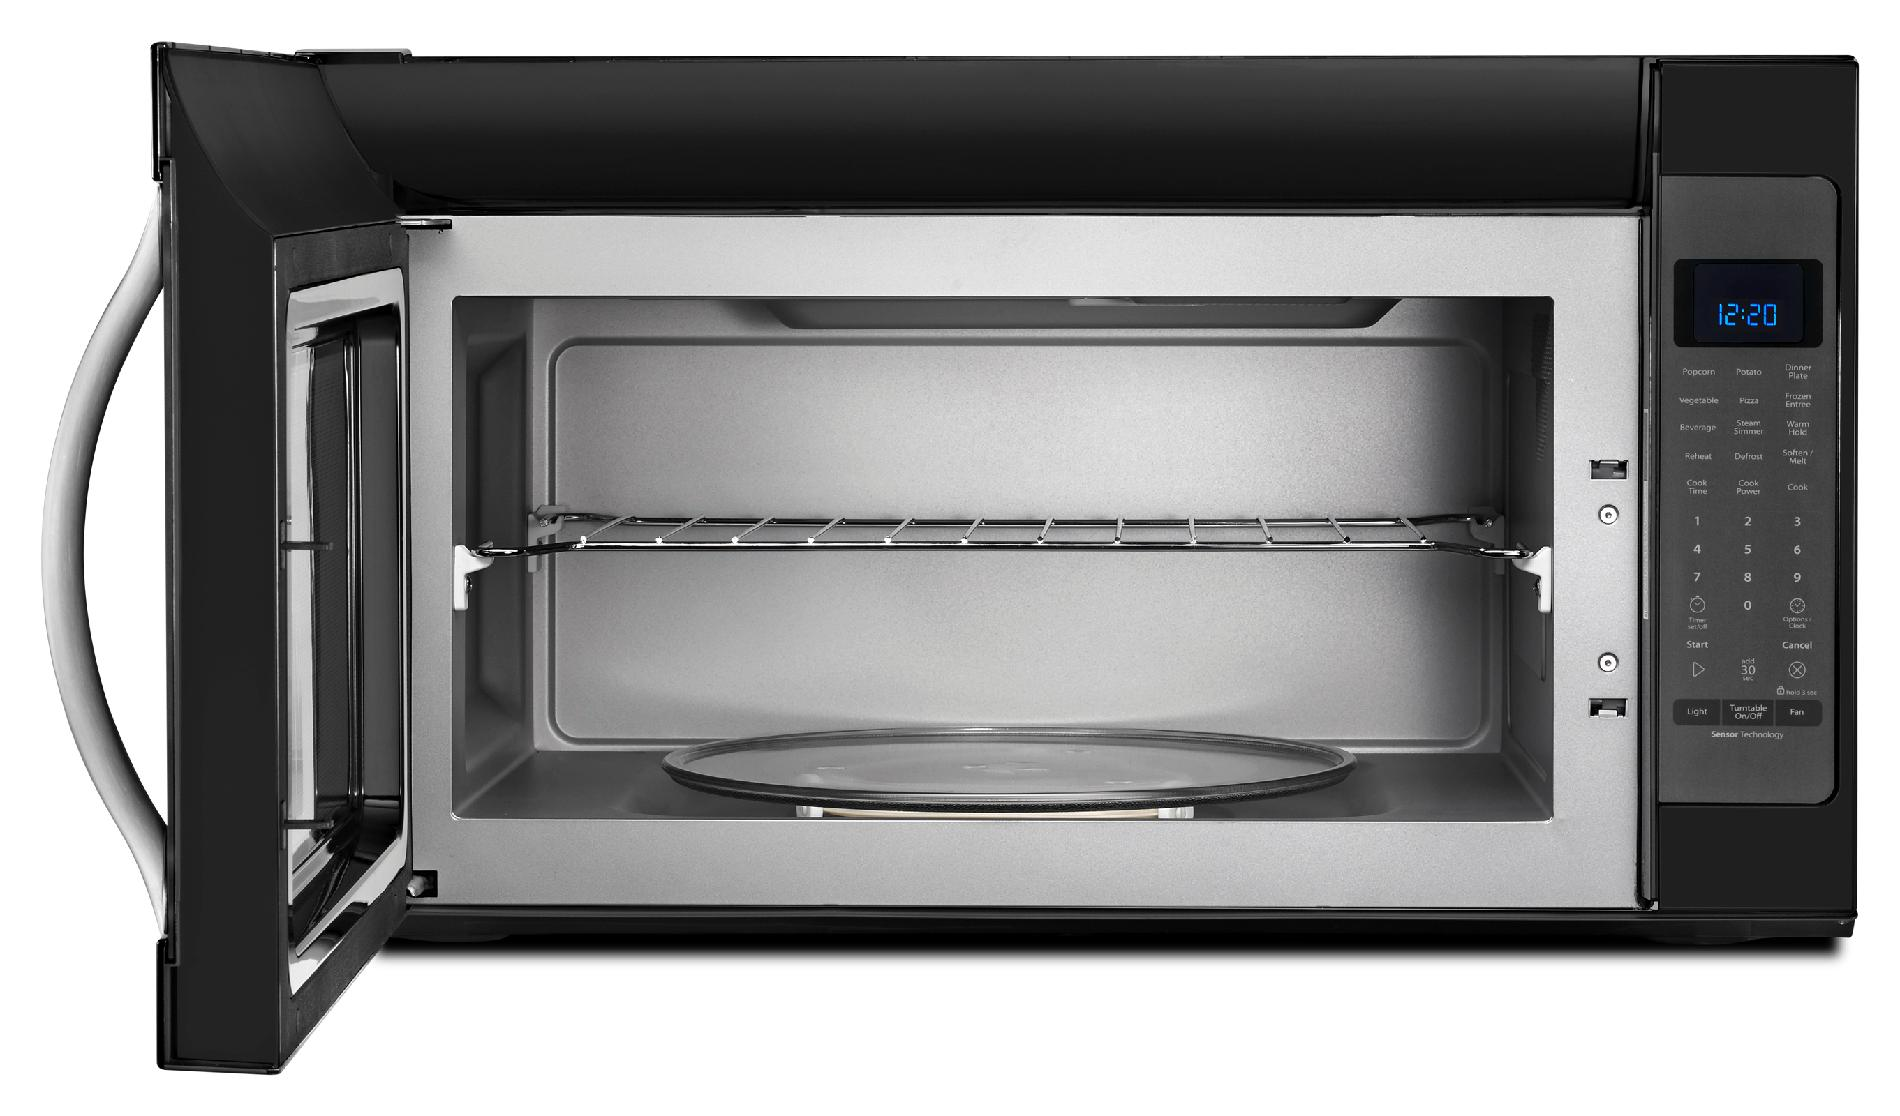 Whirlpool 2.0 cu. ft. Over-the-Range Microwave w/ CleanRelease® Non-Stick Interior - Black w/Silver Handle